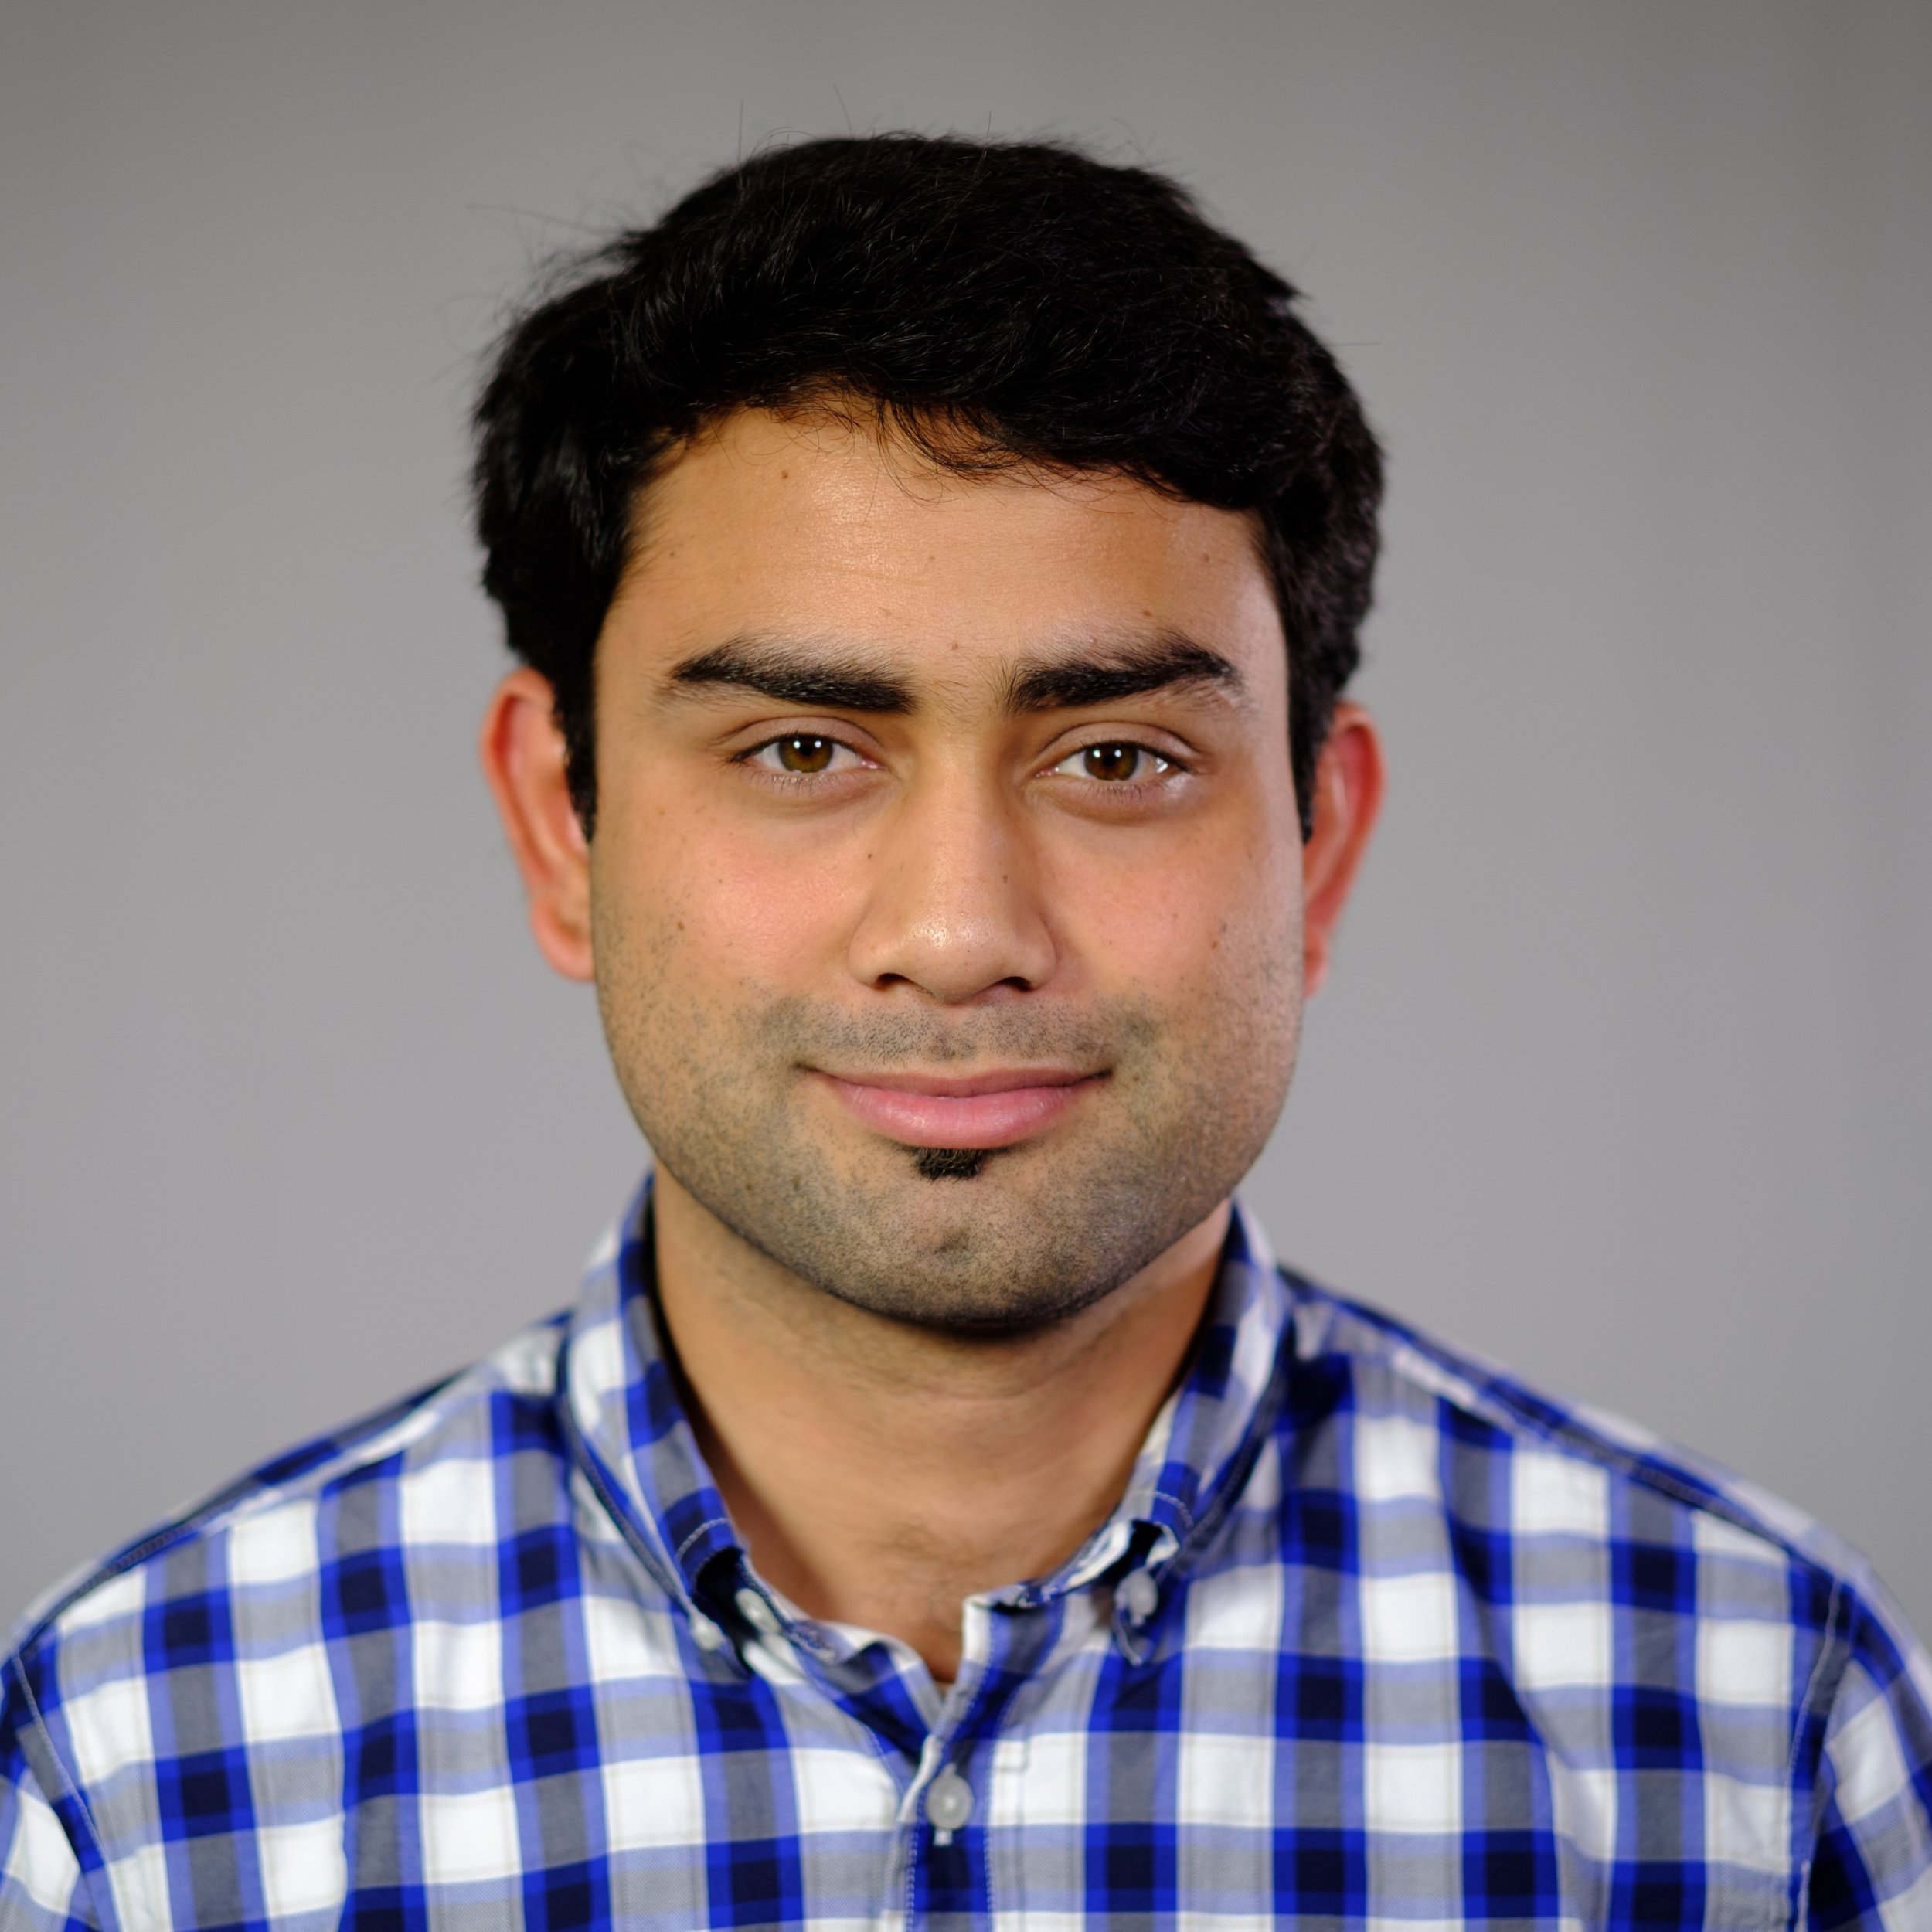 Azhar Hussain - Class of 2018Background: BTech Engineering (Banaras Hindu University)Faculty Supervisor: Climate Impact Lab, Michael GreenstonePlacement: PhD Economics, LSE